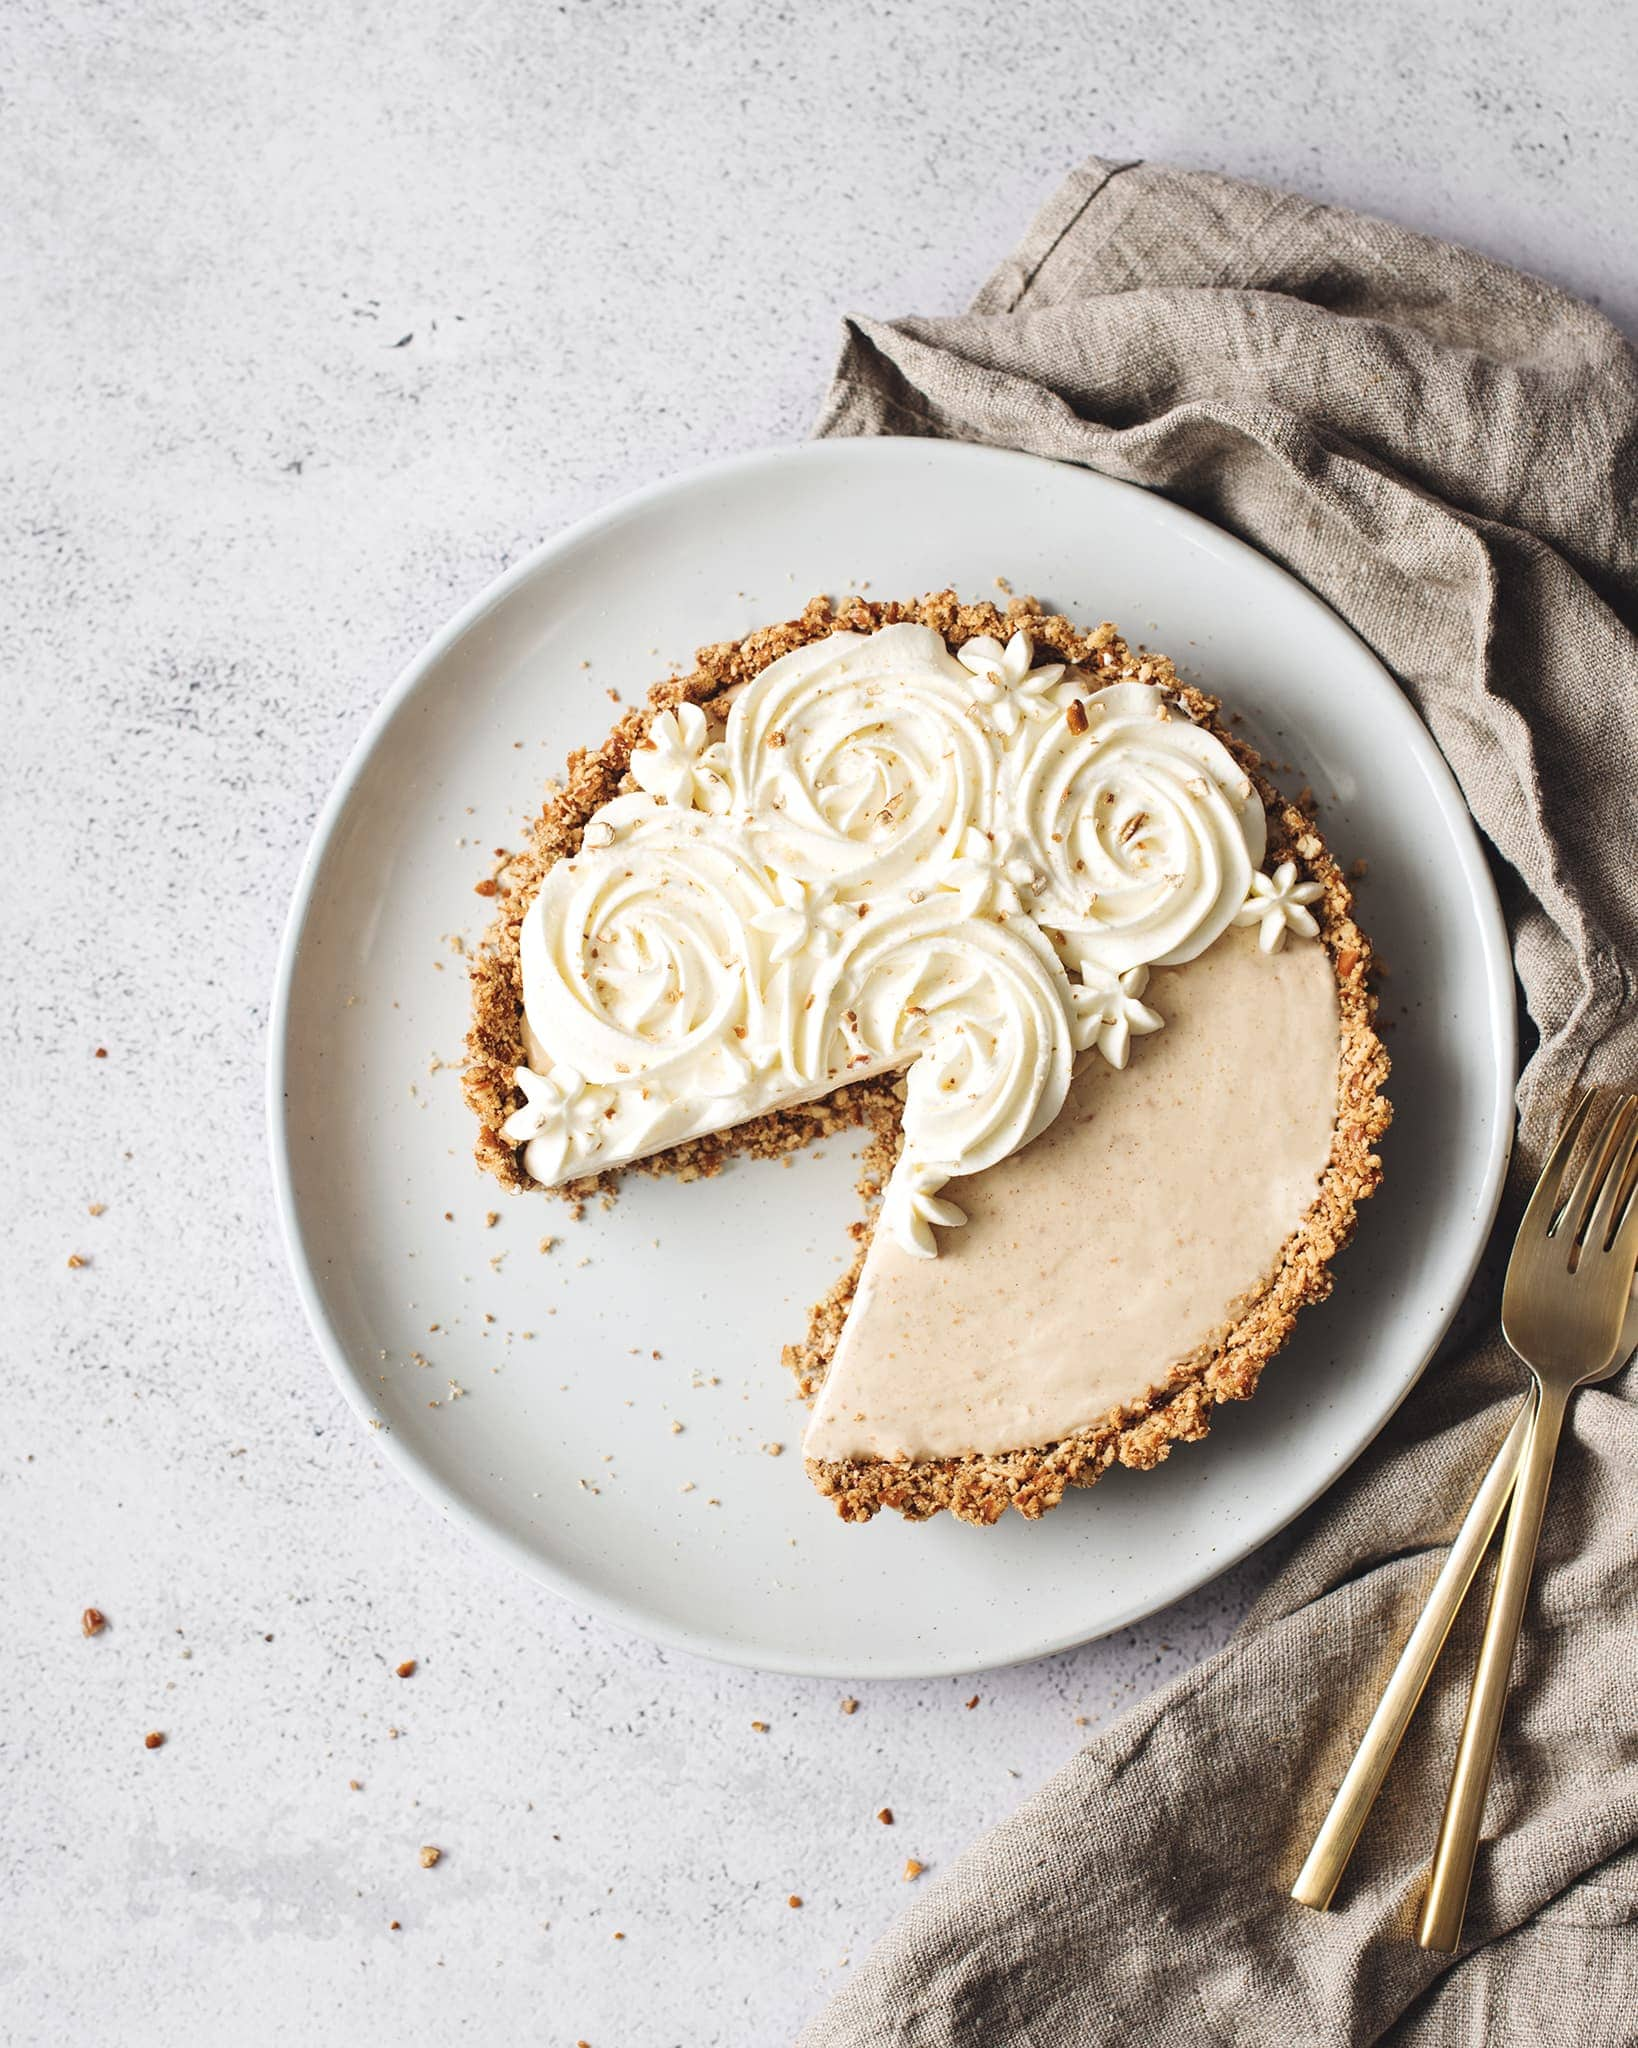 A slice cut out of a peanut butter ice cream pie